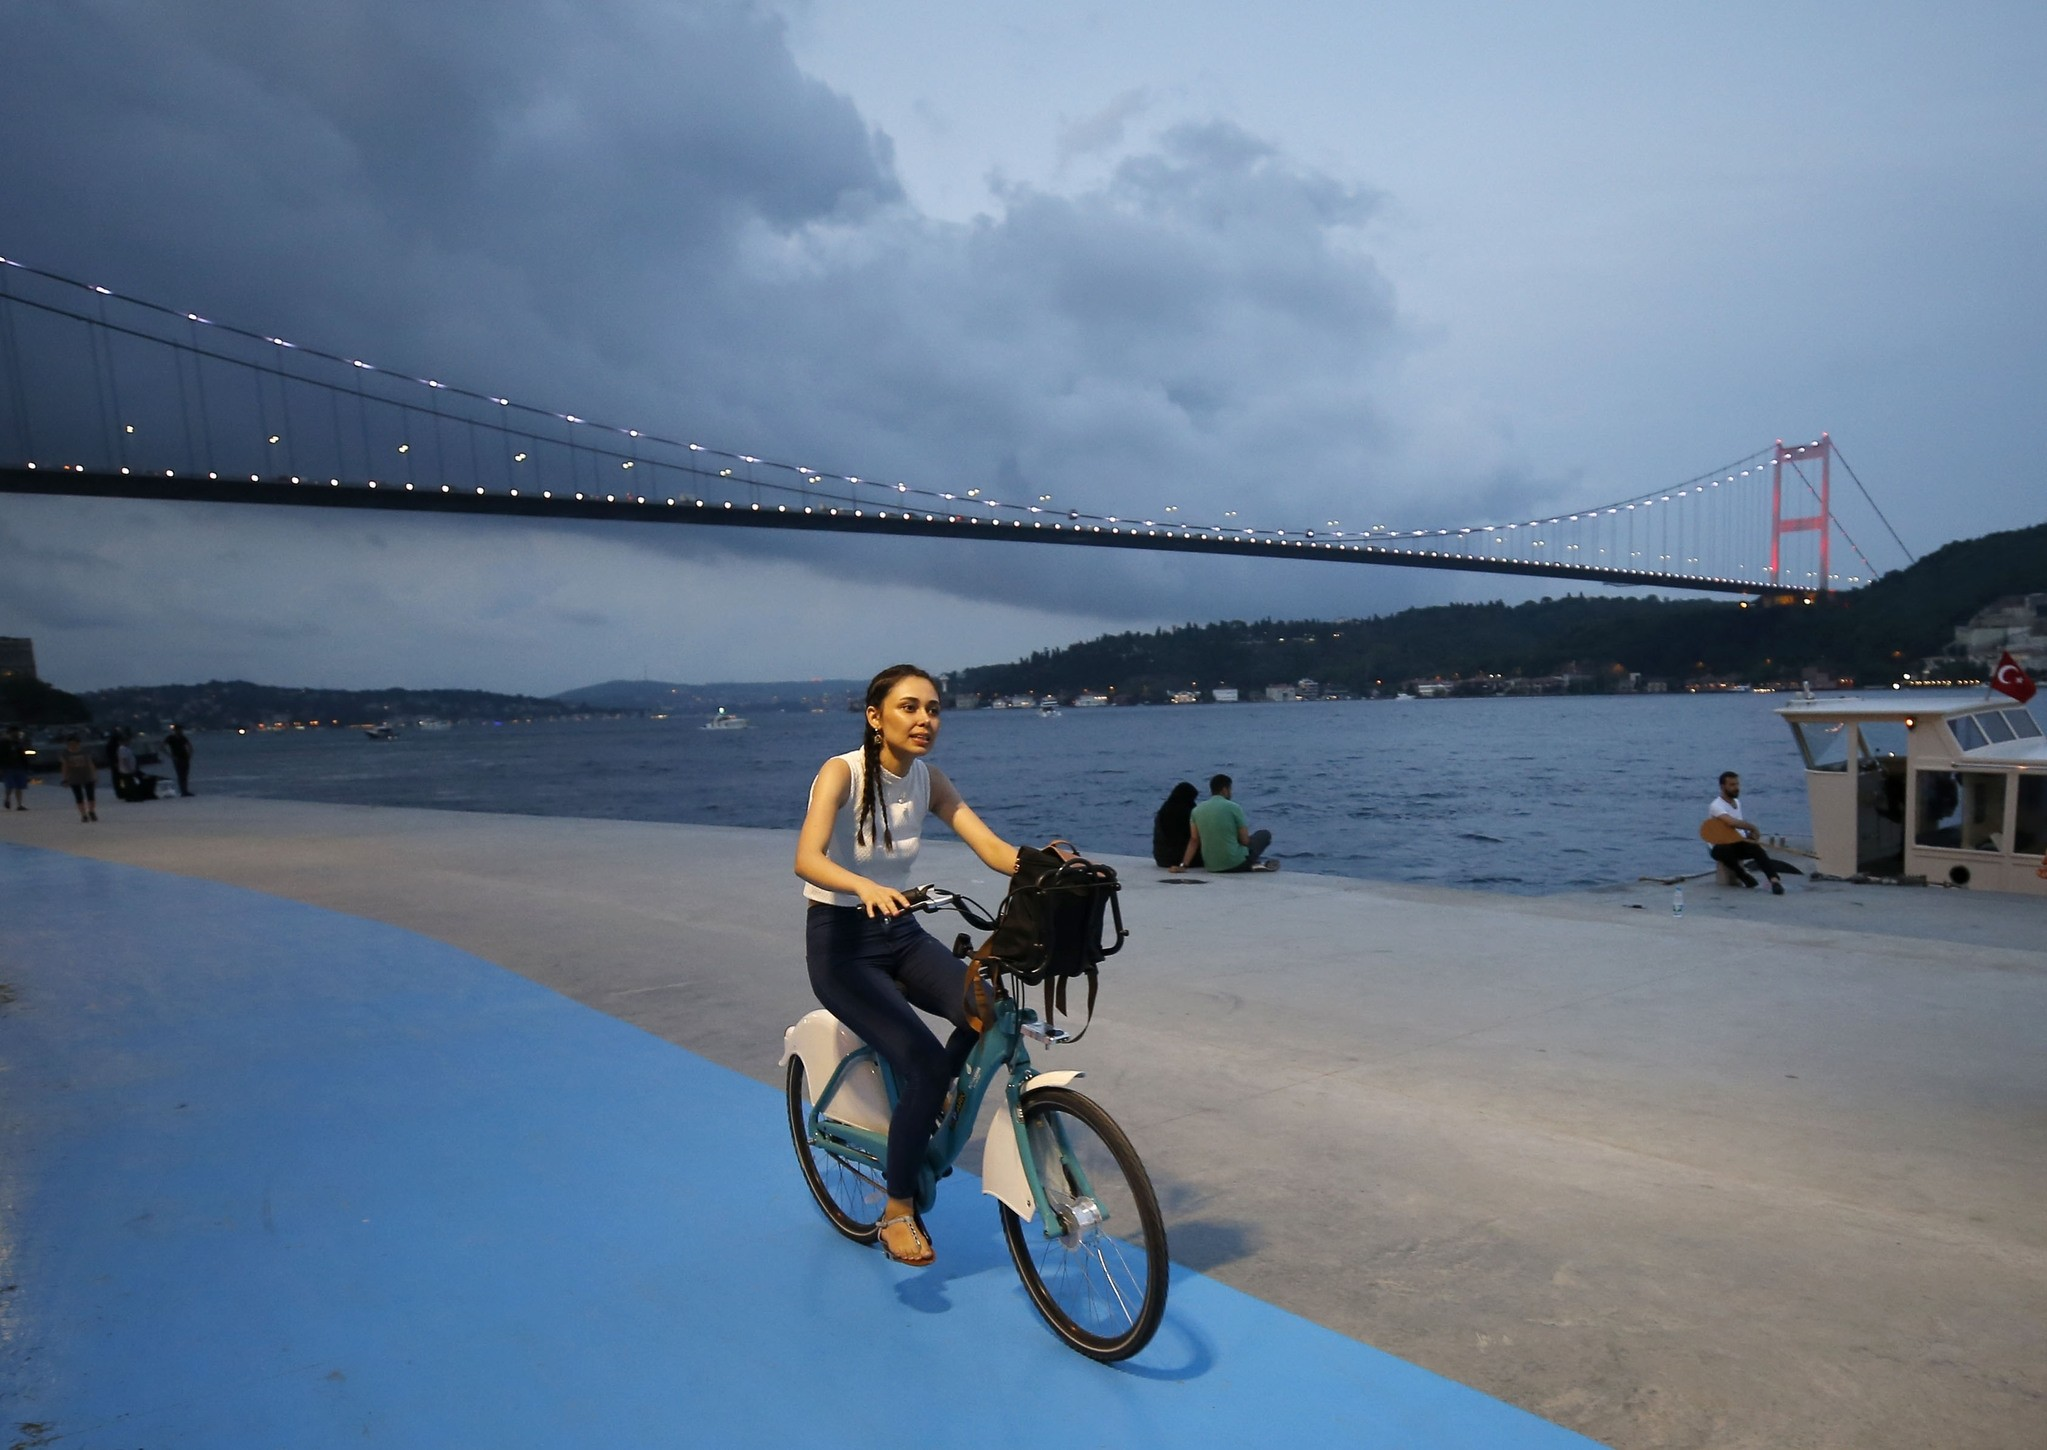 A woman rides near Istanbulu2019s water front with the bike she rented from u0130SBIKE.